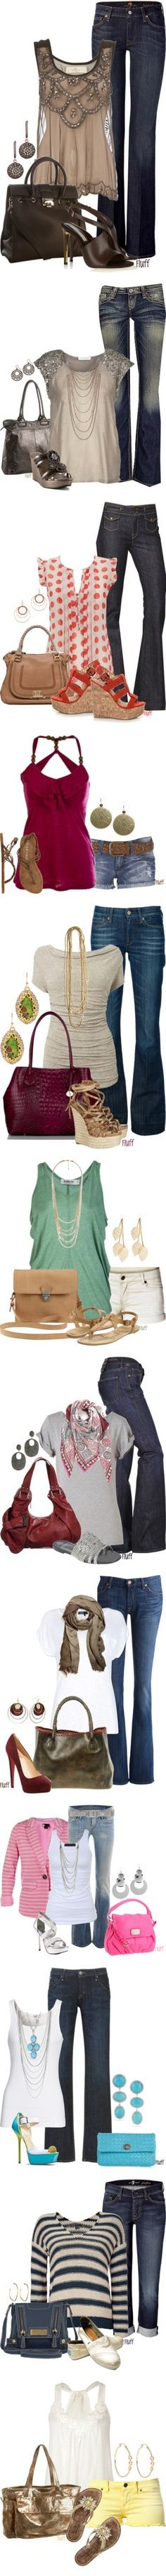 Find More at => http://feedproxy.google.com/~r/amazingoutfits/~3/YCTrEU2BP_8/AmazingOutfits.page